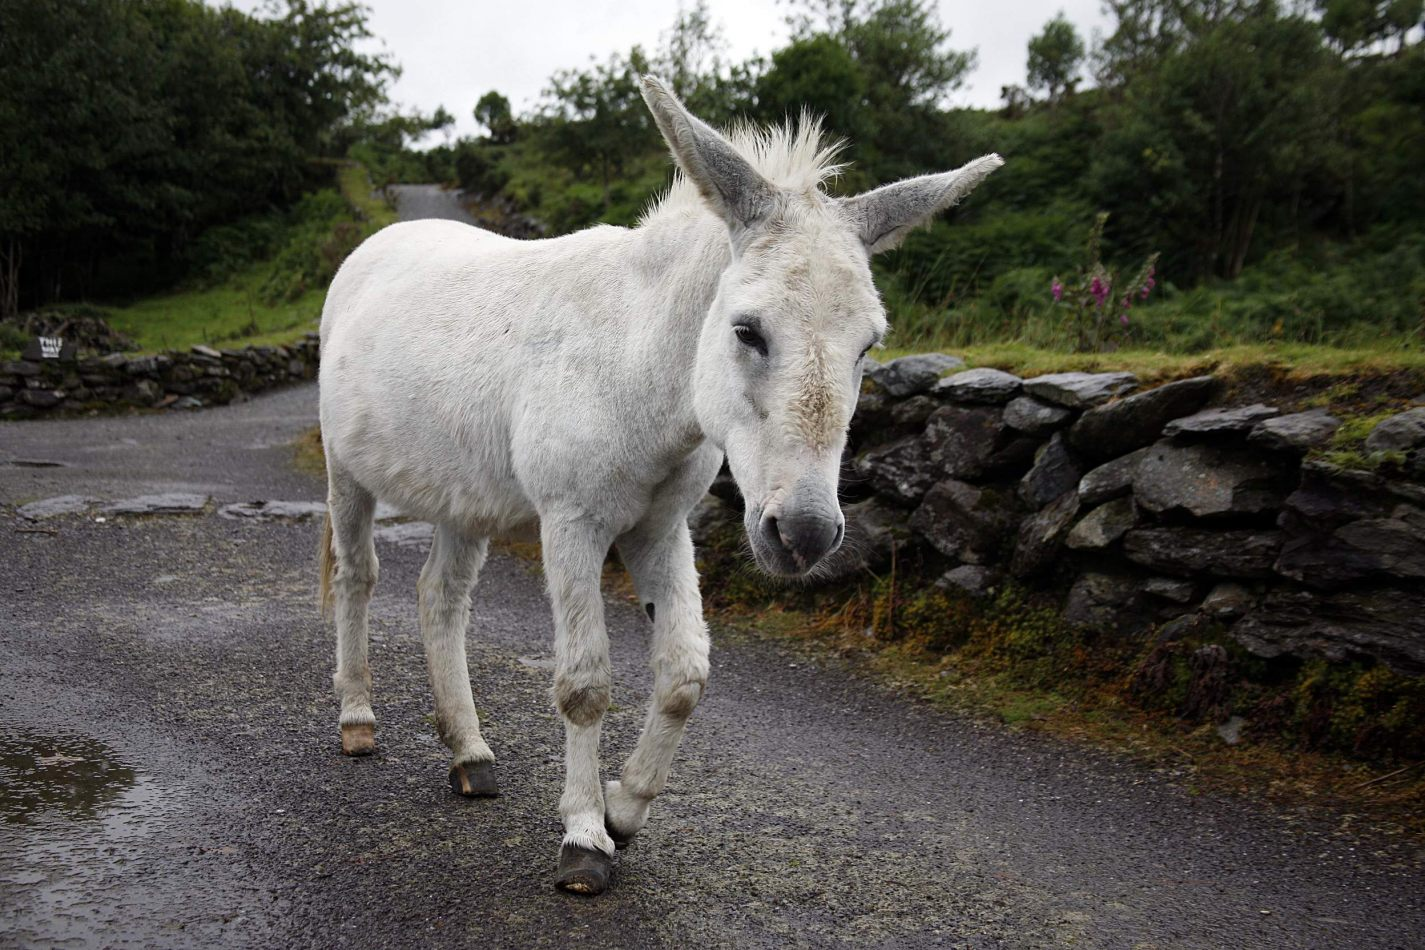 Anthony Ellis Photography: Eidirsgan - The White Donkey